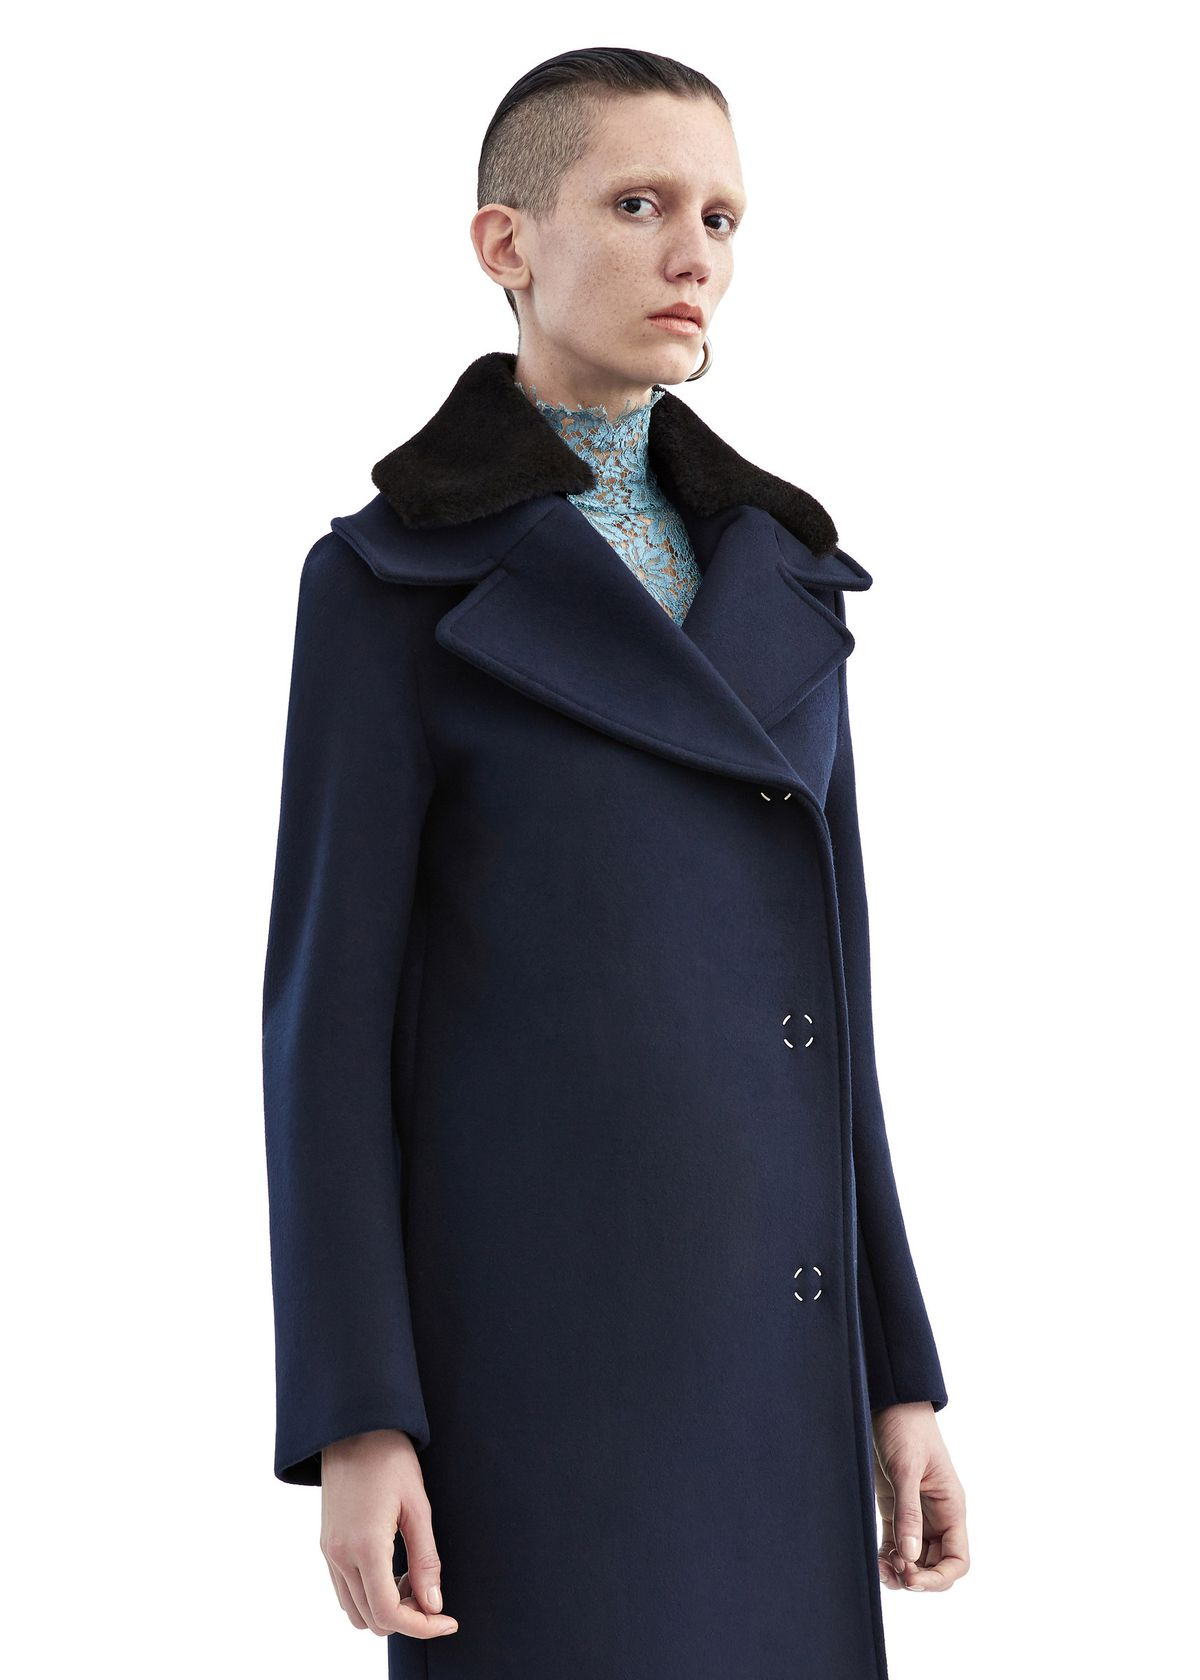 A wool coat with a fur collar